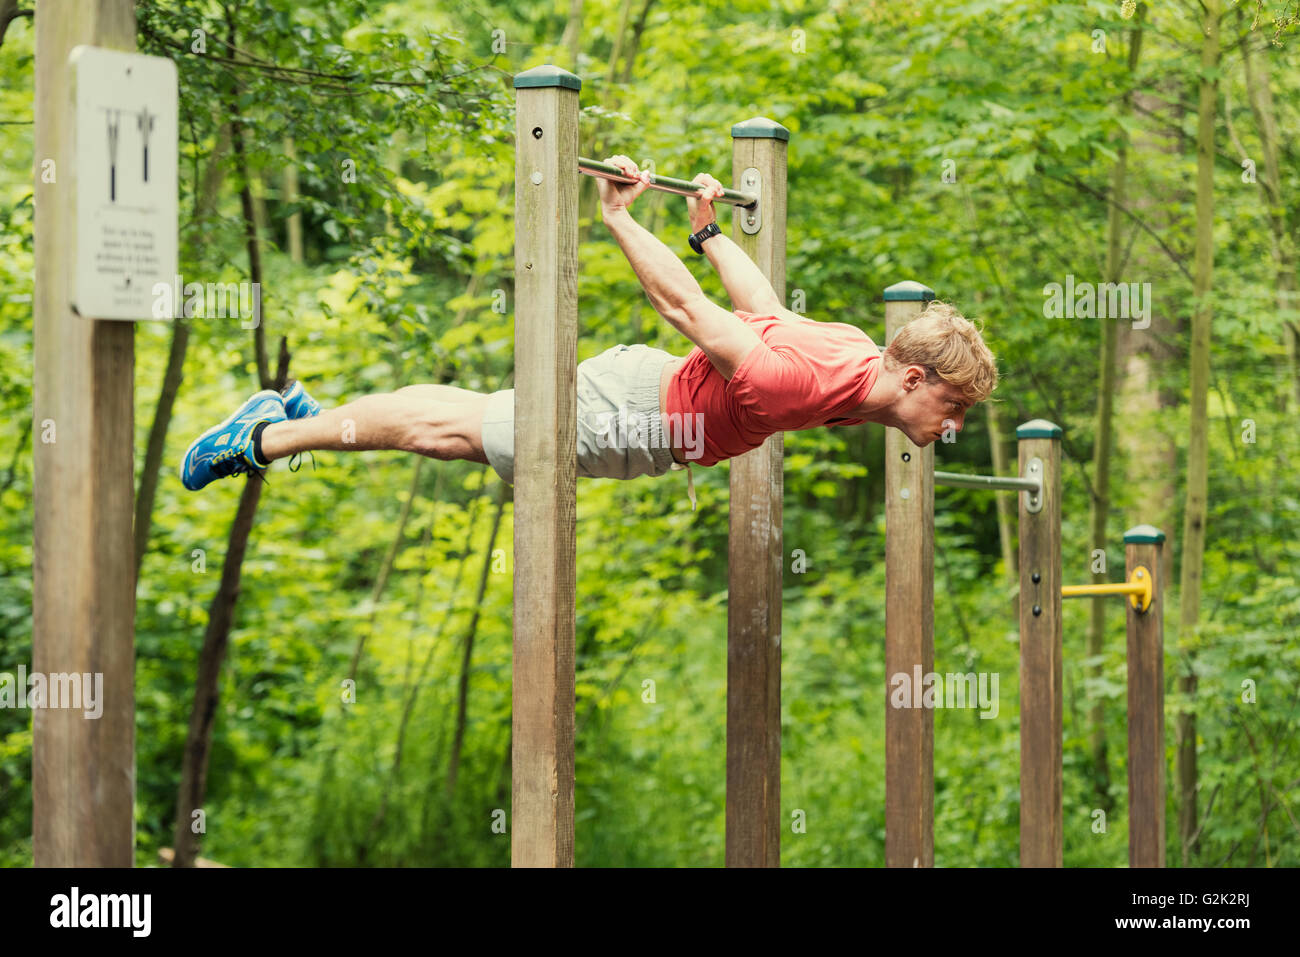 Male athlete doing muscle-up on horizontal bar - Stock Image